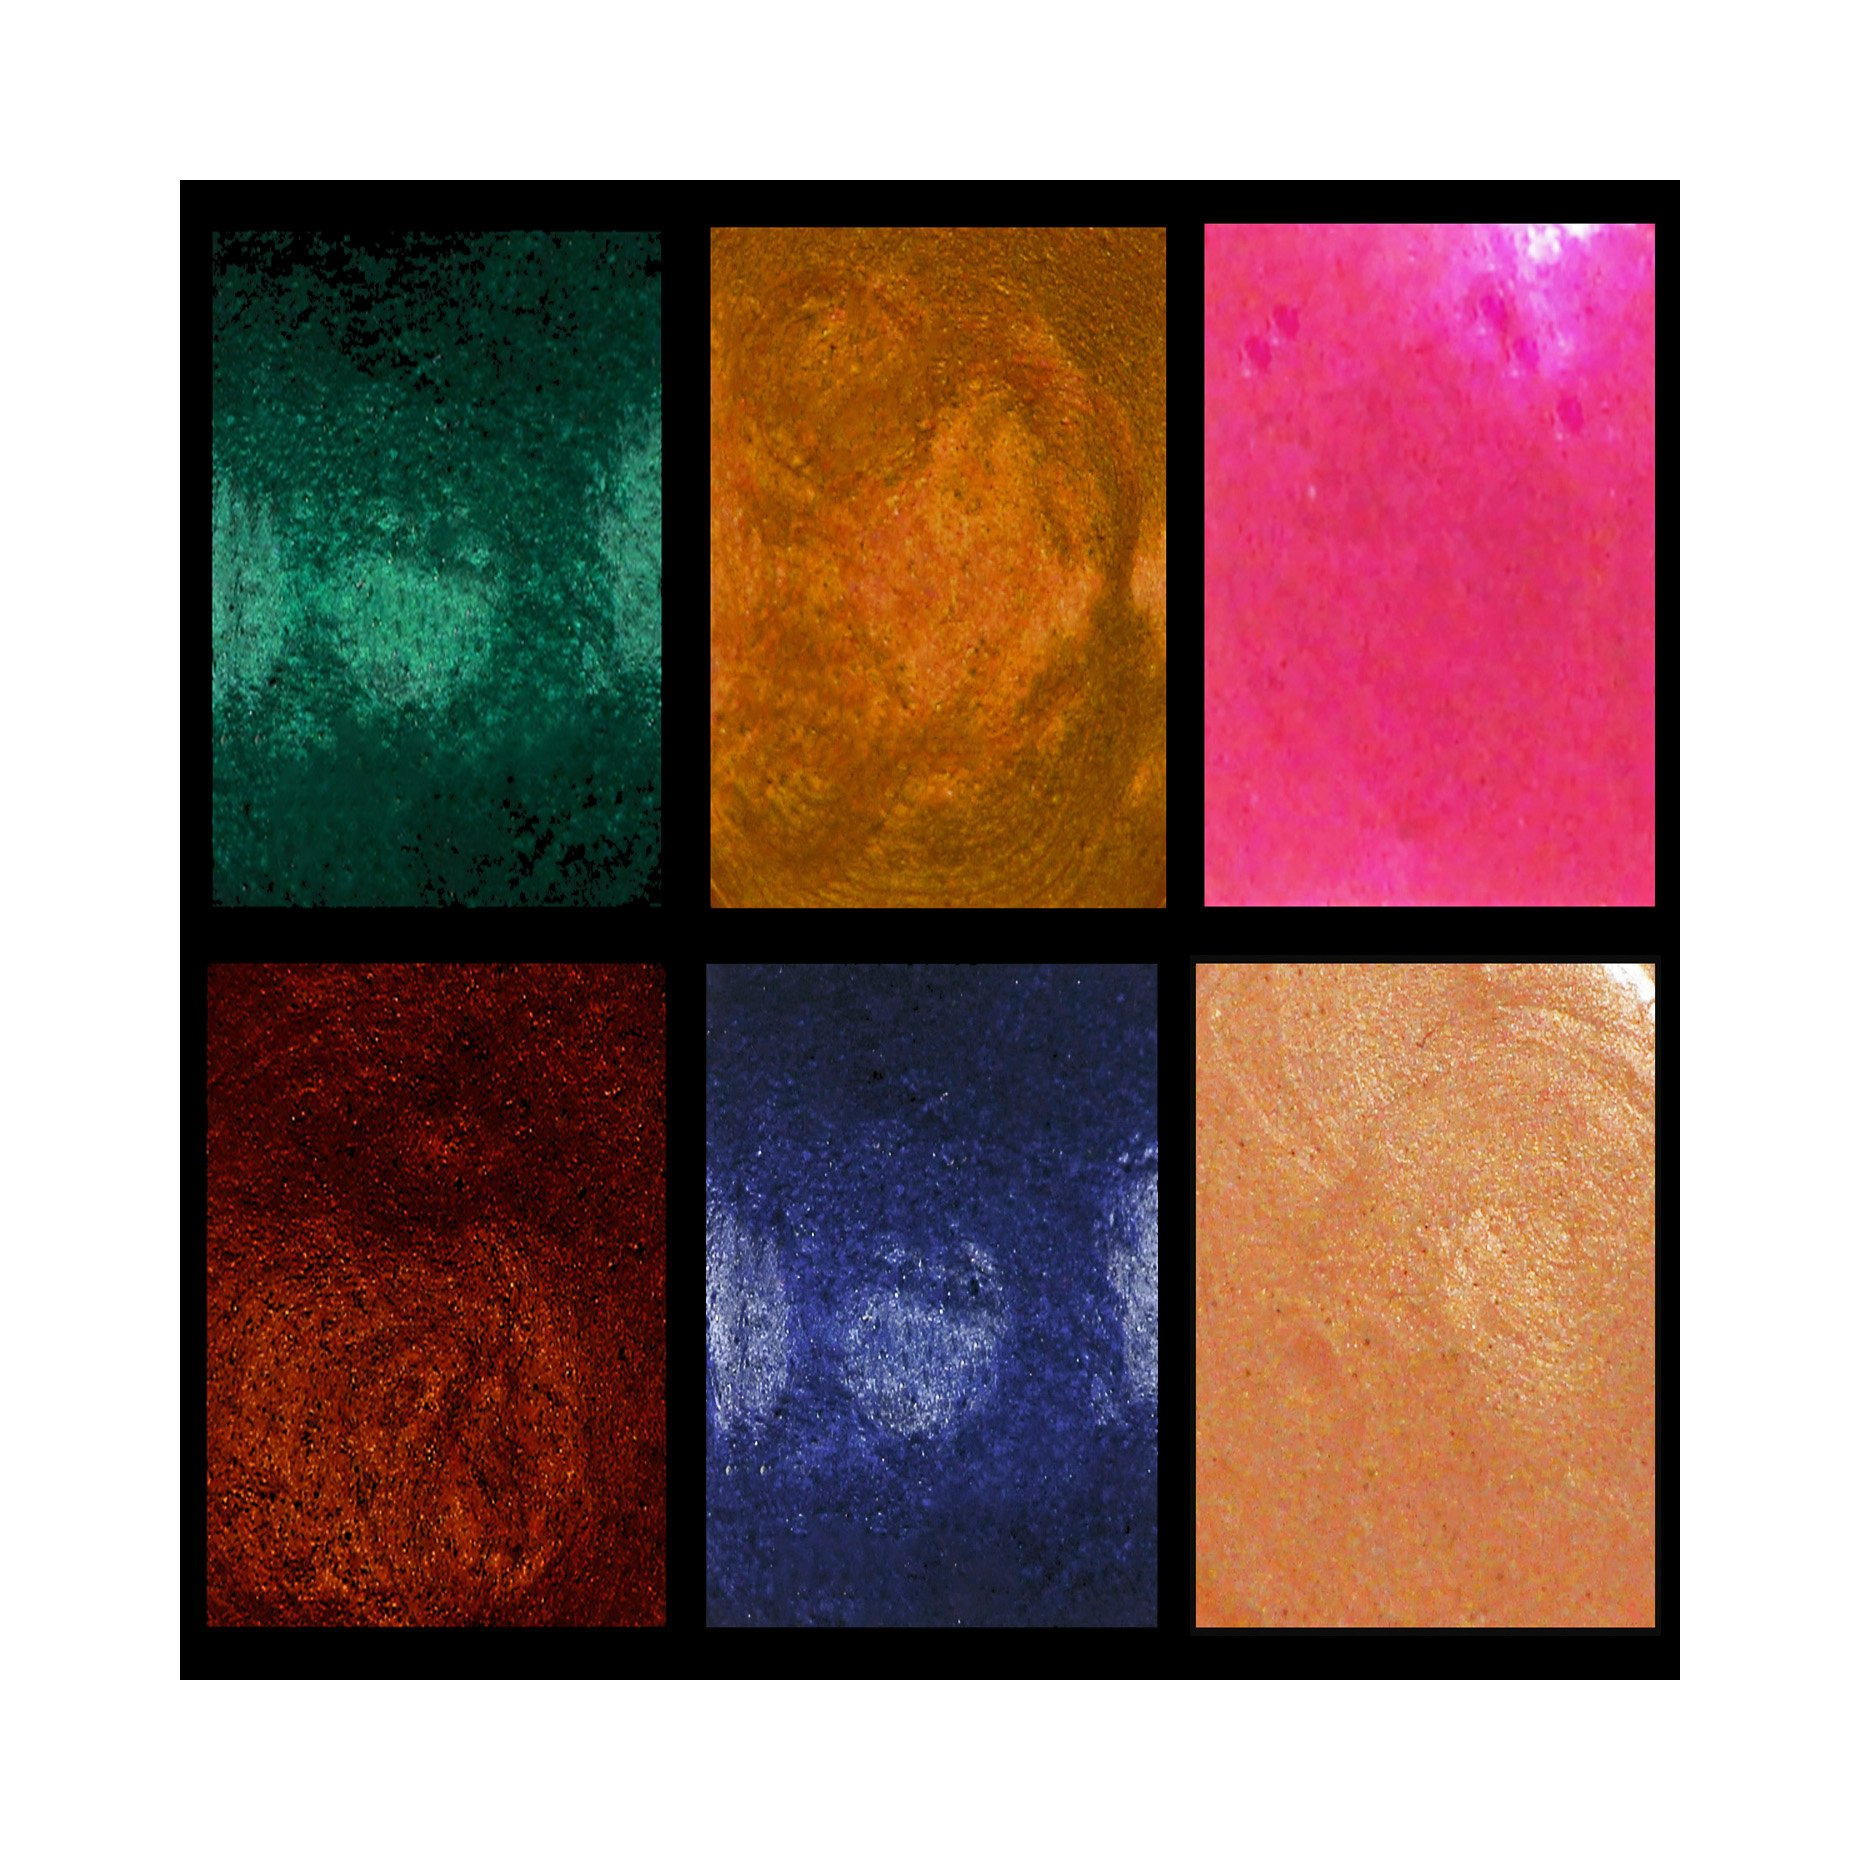 Ancient Earth, Primary Elements Arte-Pigments, 30ml Jars 6pc Set Save 10% off retail